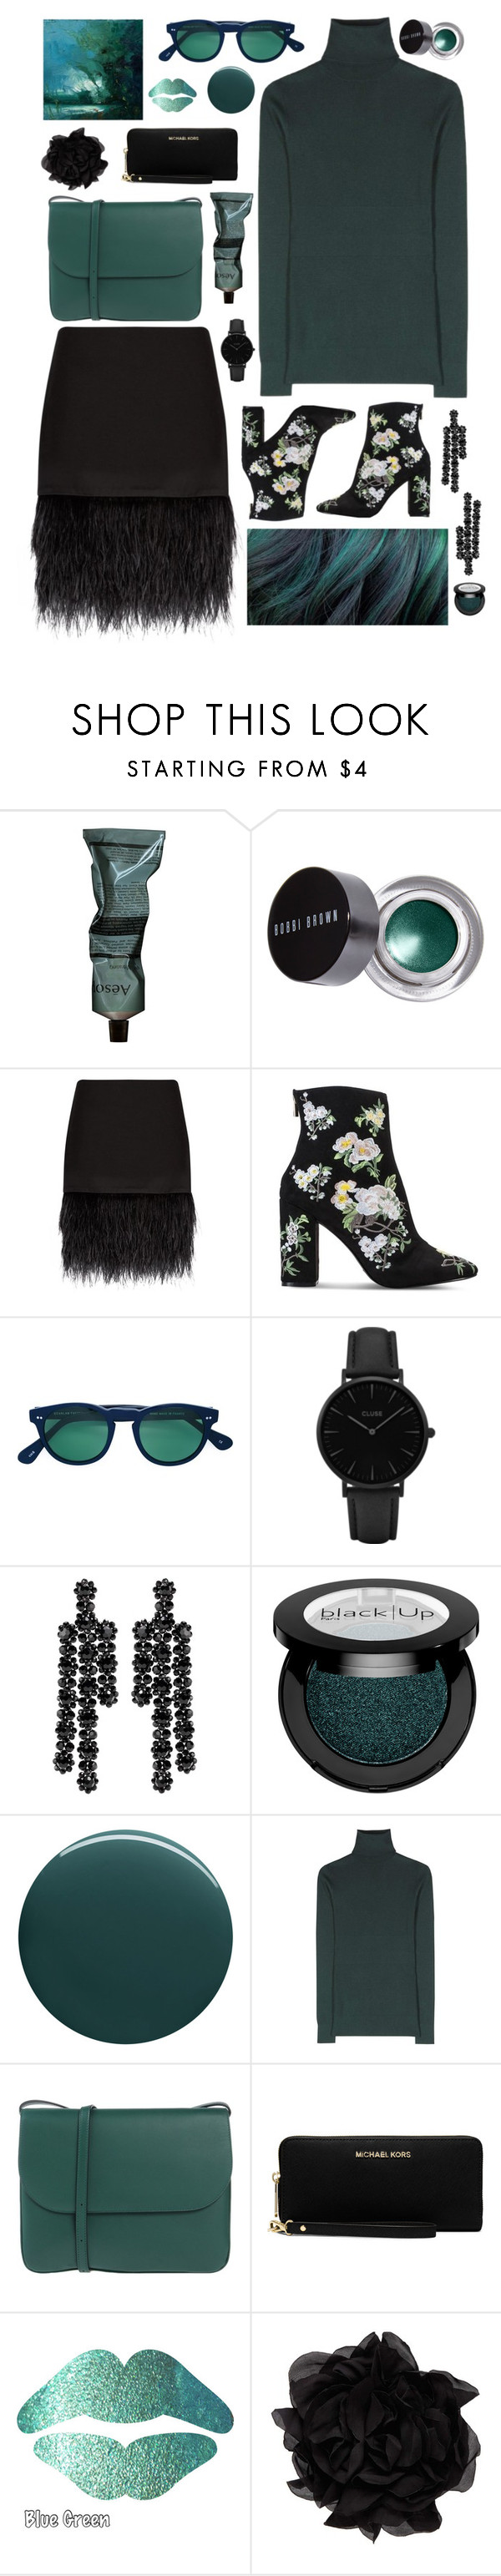 """forest'y"" by agnelija ❤ liked on Polyvore featuring Aesop, Bobbi Brown Cosmetics, Polo Ralph Lauren, Miss Selfridge, Scanlan Theodore, CLUSE, Simone Rocha, Deborah Lippmann, Dolce&Gabbana and Marni"